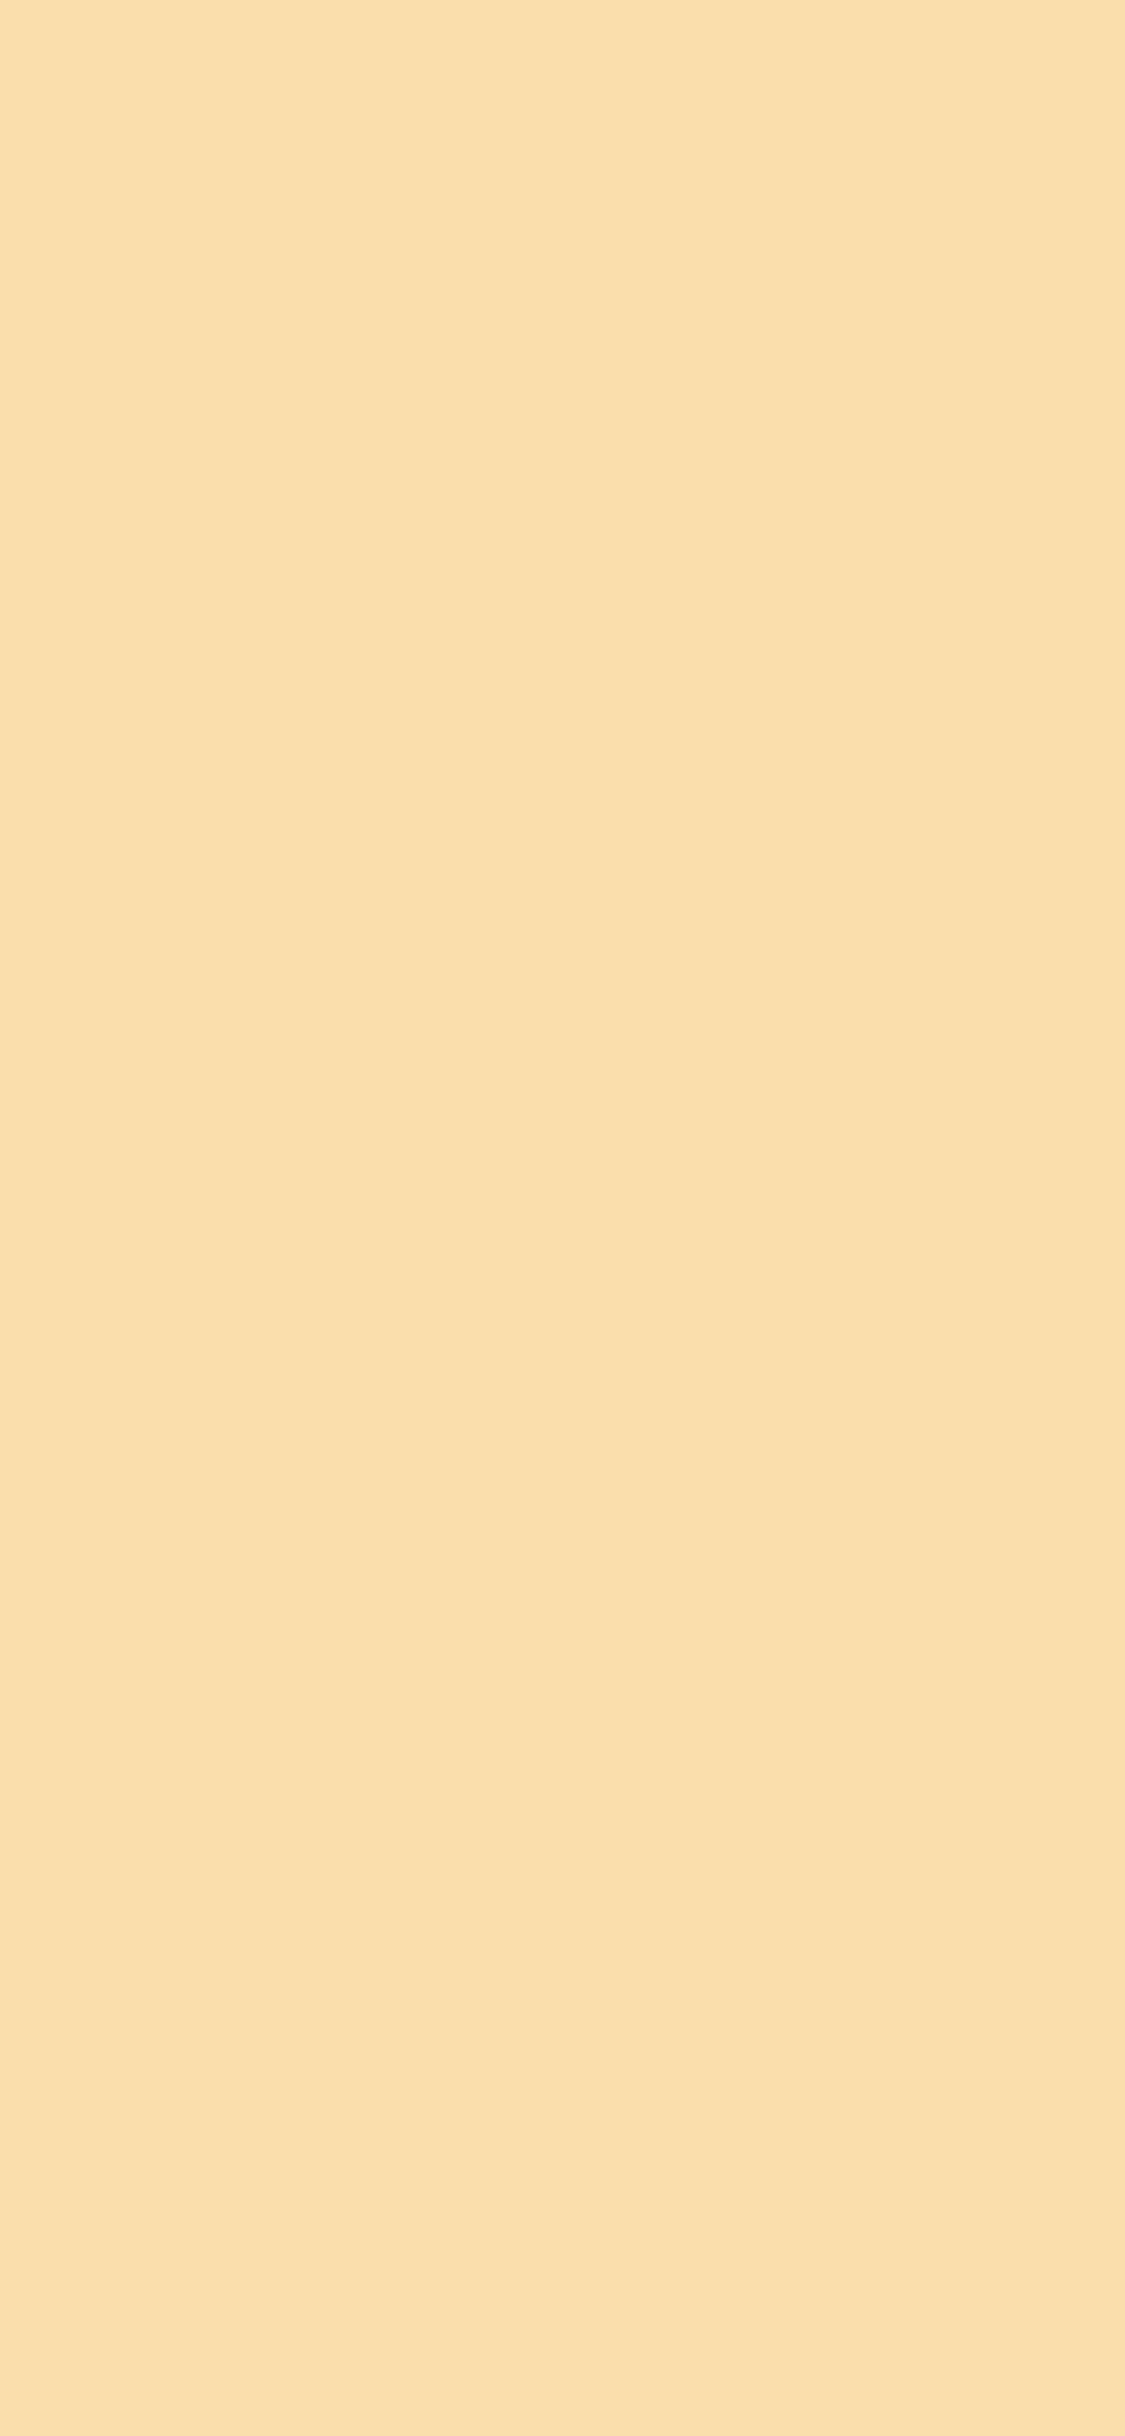 1125x2436 Peach-yellow Solid Color Background